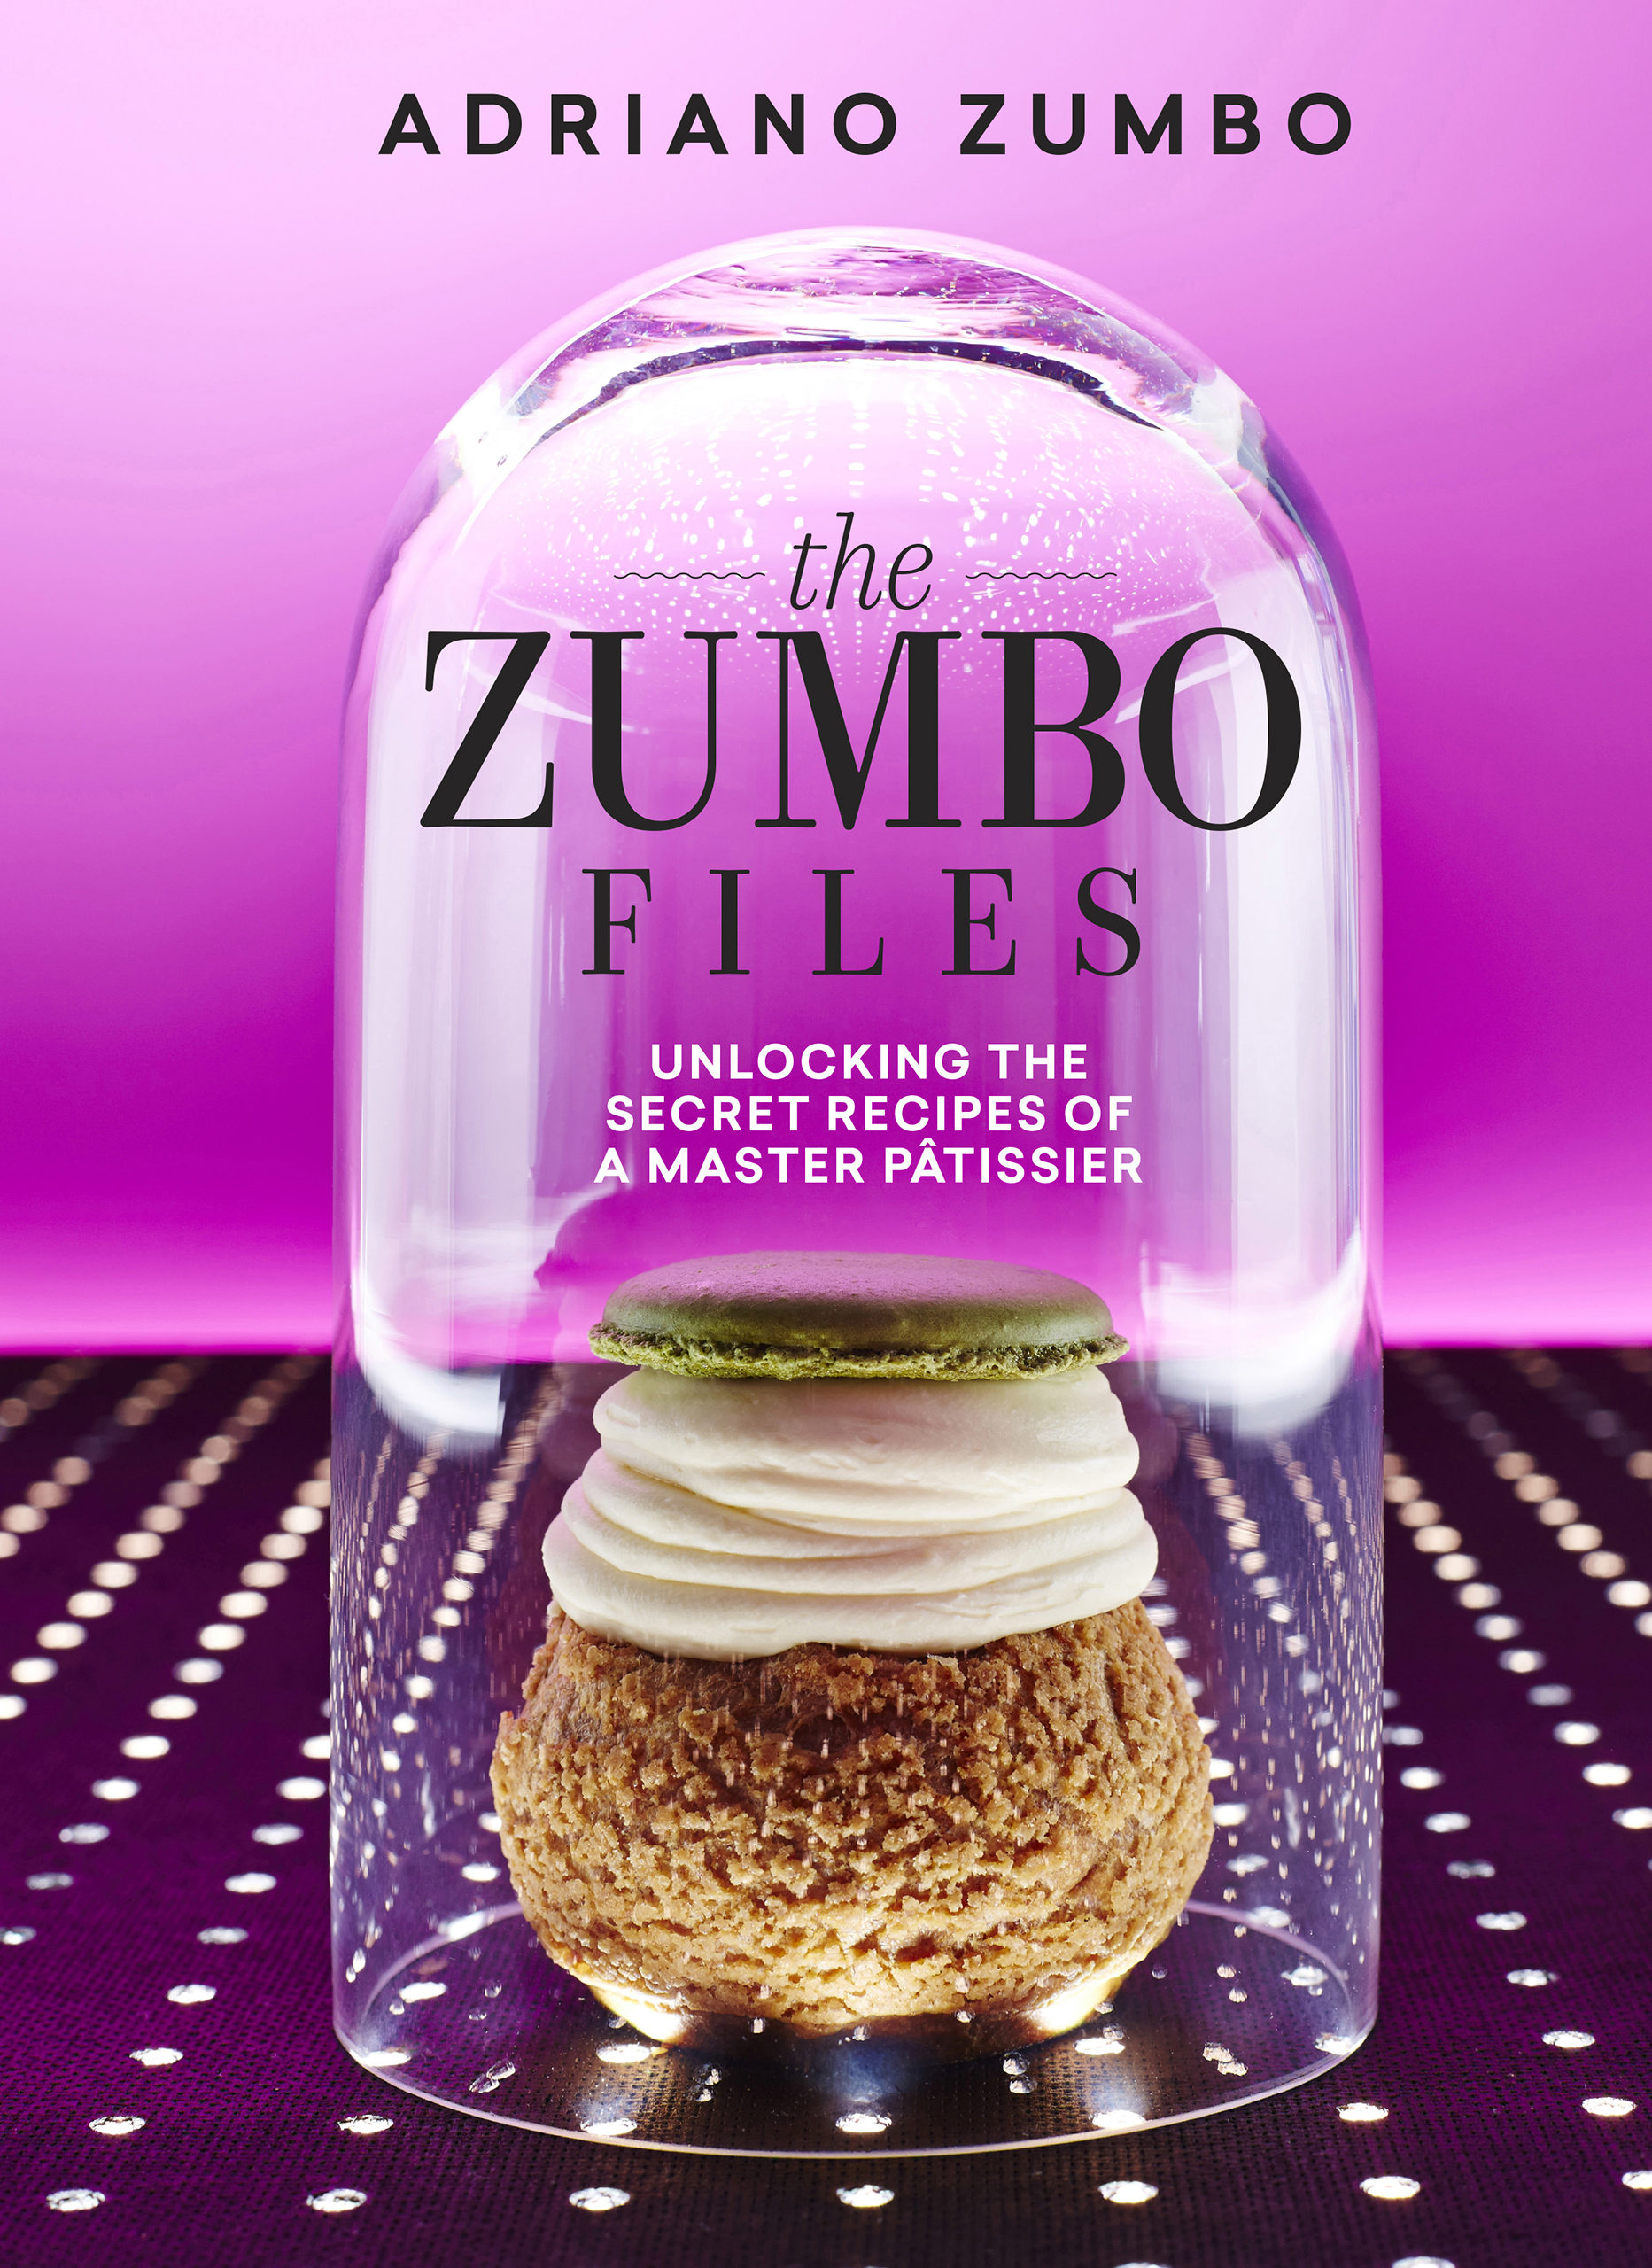 The zumbo files ebook adriano zumbo descargar libro pdf o epub the zumbo files ebook adriano zumbo 9781925266504 forumfinder